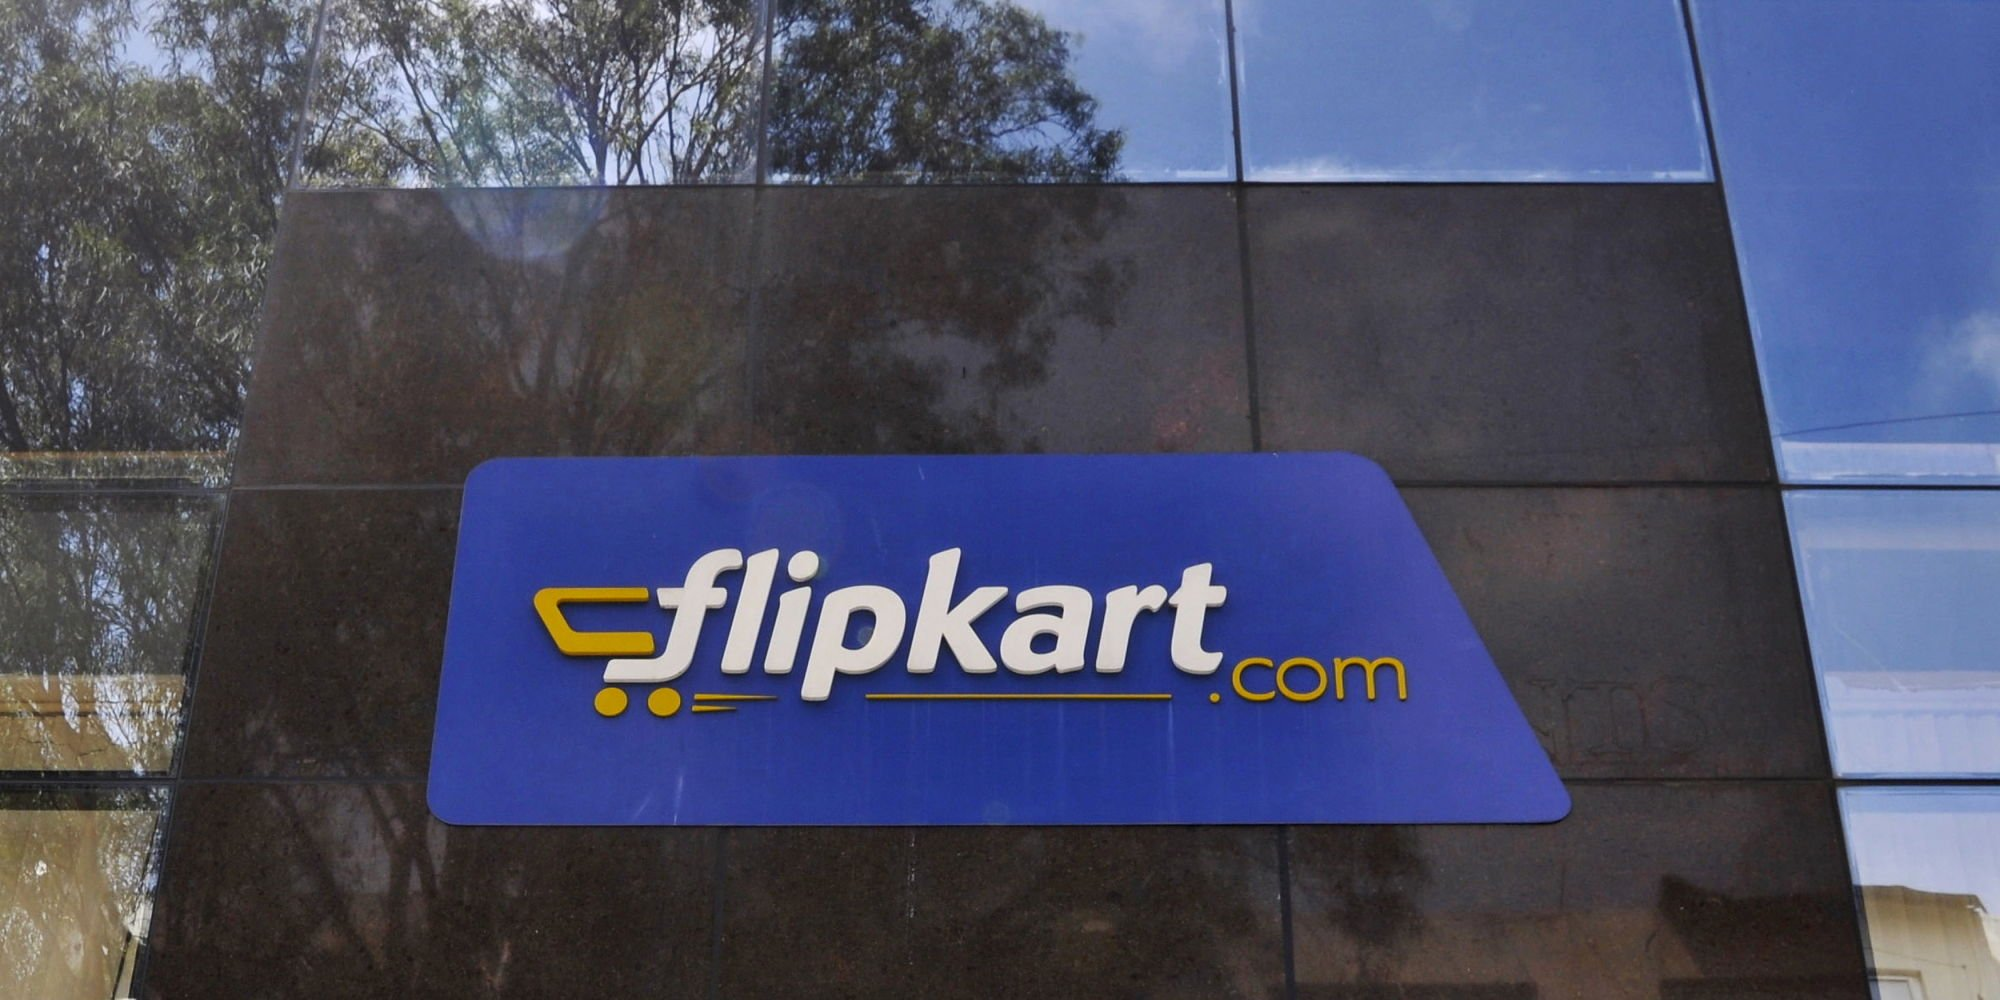 dc772f2a057 Bengaluru-headquarterd Flipkart had revised its initial offer for Snapdeal  to up to  950 million